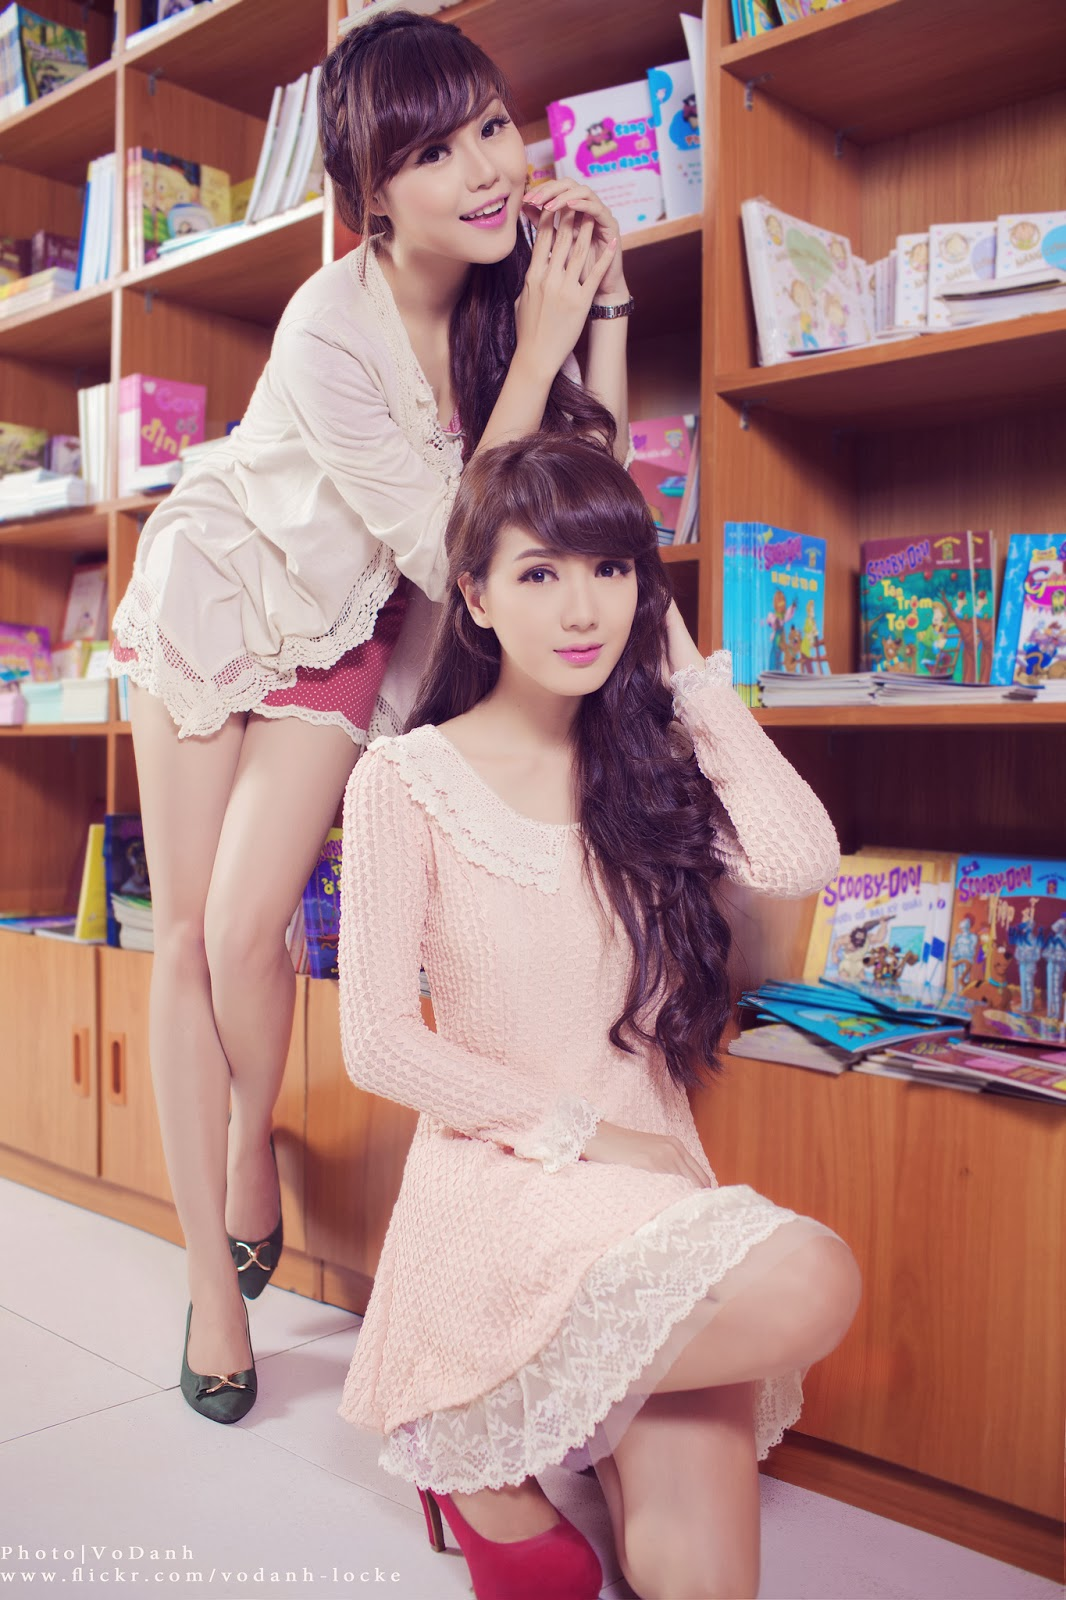 Seems Chinese sexy teen pics remarkable phrase